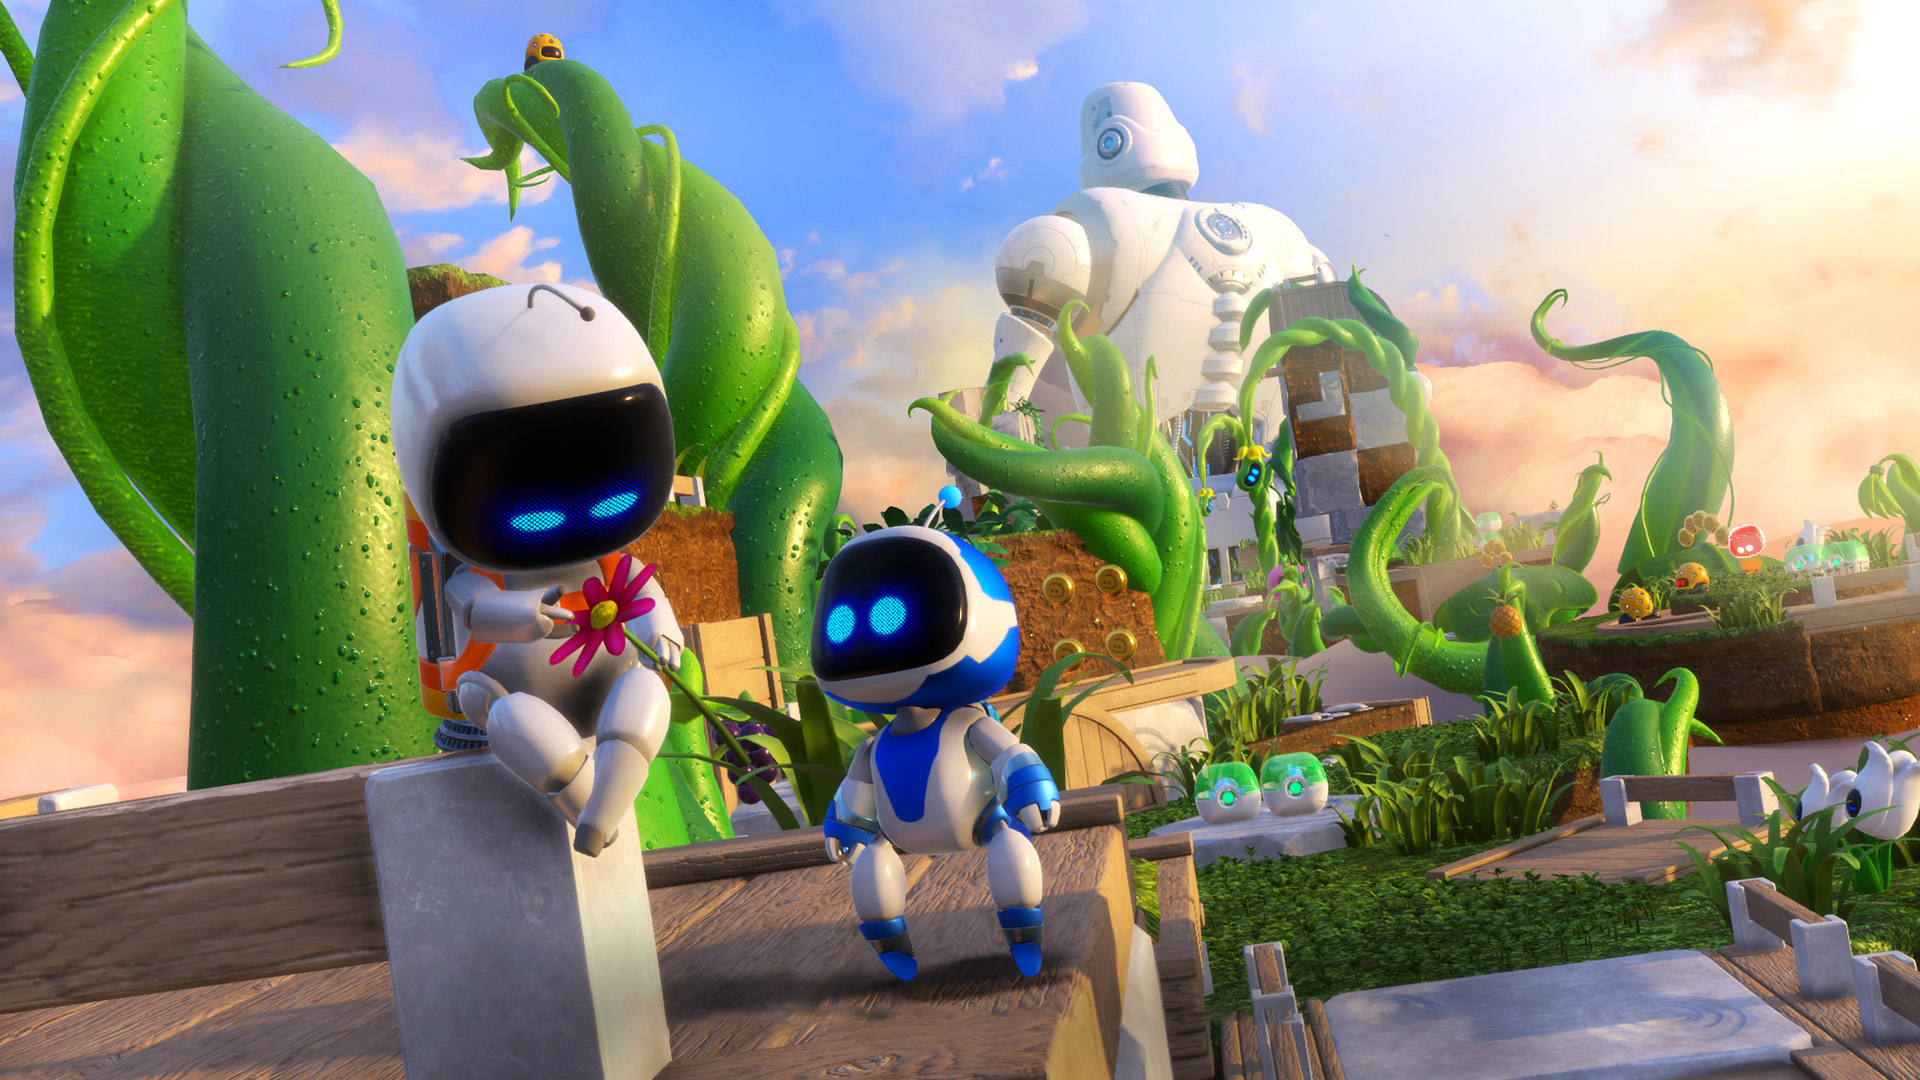 astro-bot-insights-and-artwork.jpg